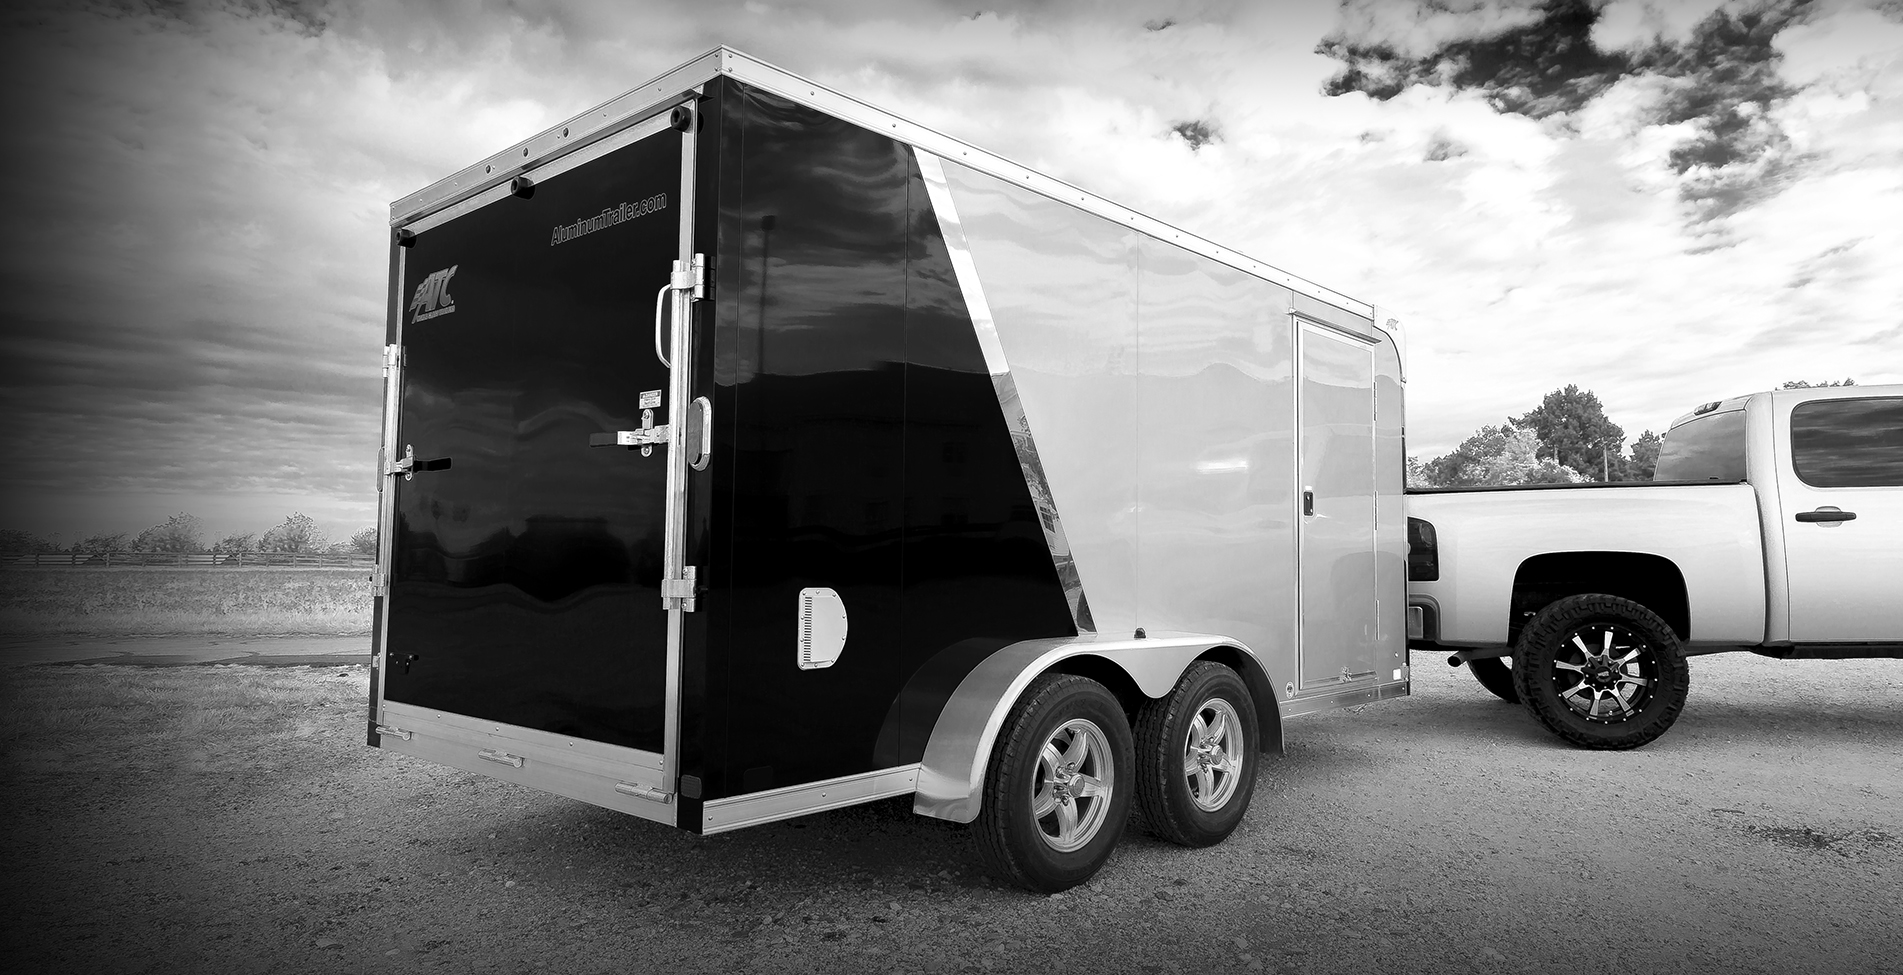 Toppers Trailers Plus New Used Truck Topper Snow Plows Trailer Mounted Electric Brake Controller Wiring Motorcycle Haulers Built To Last